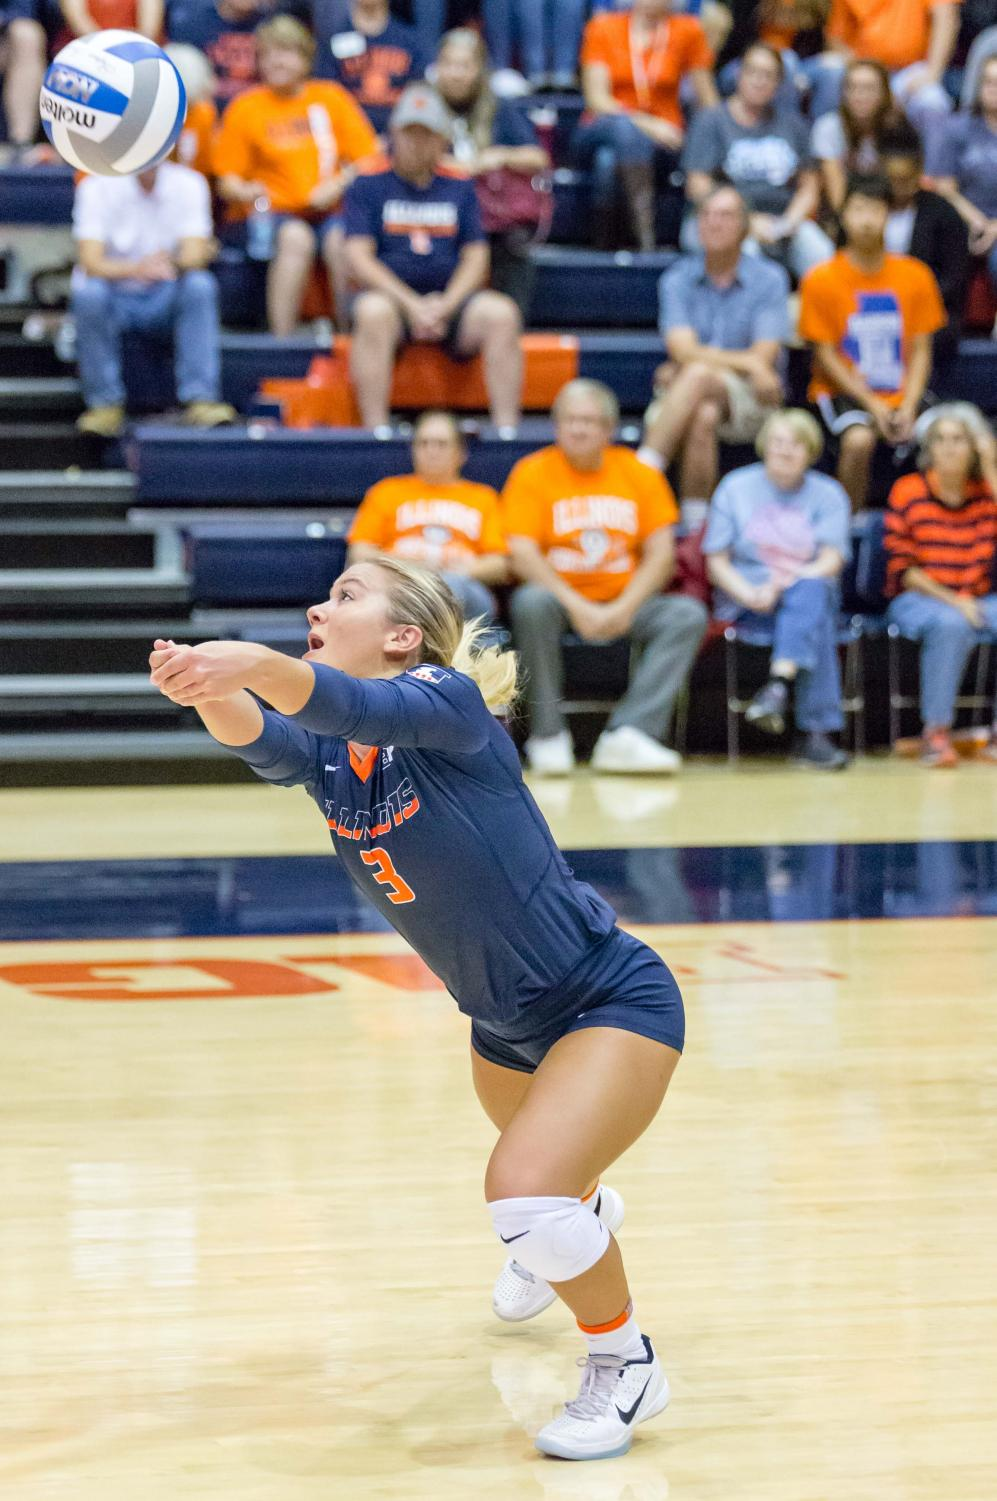 Illinois defensive specialist Brandi Donnelly (3) passes the ball during the match against Purdue at Huff Hall on Oct. 6.